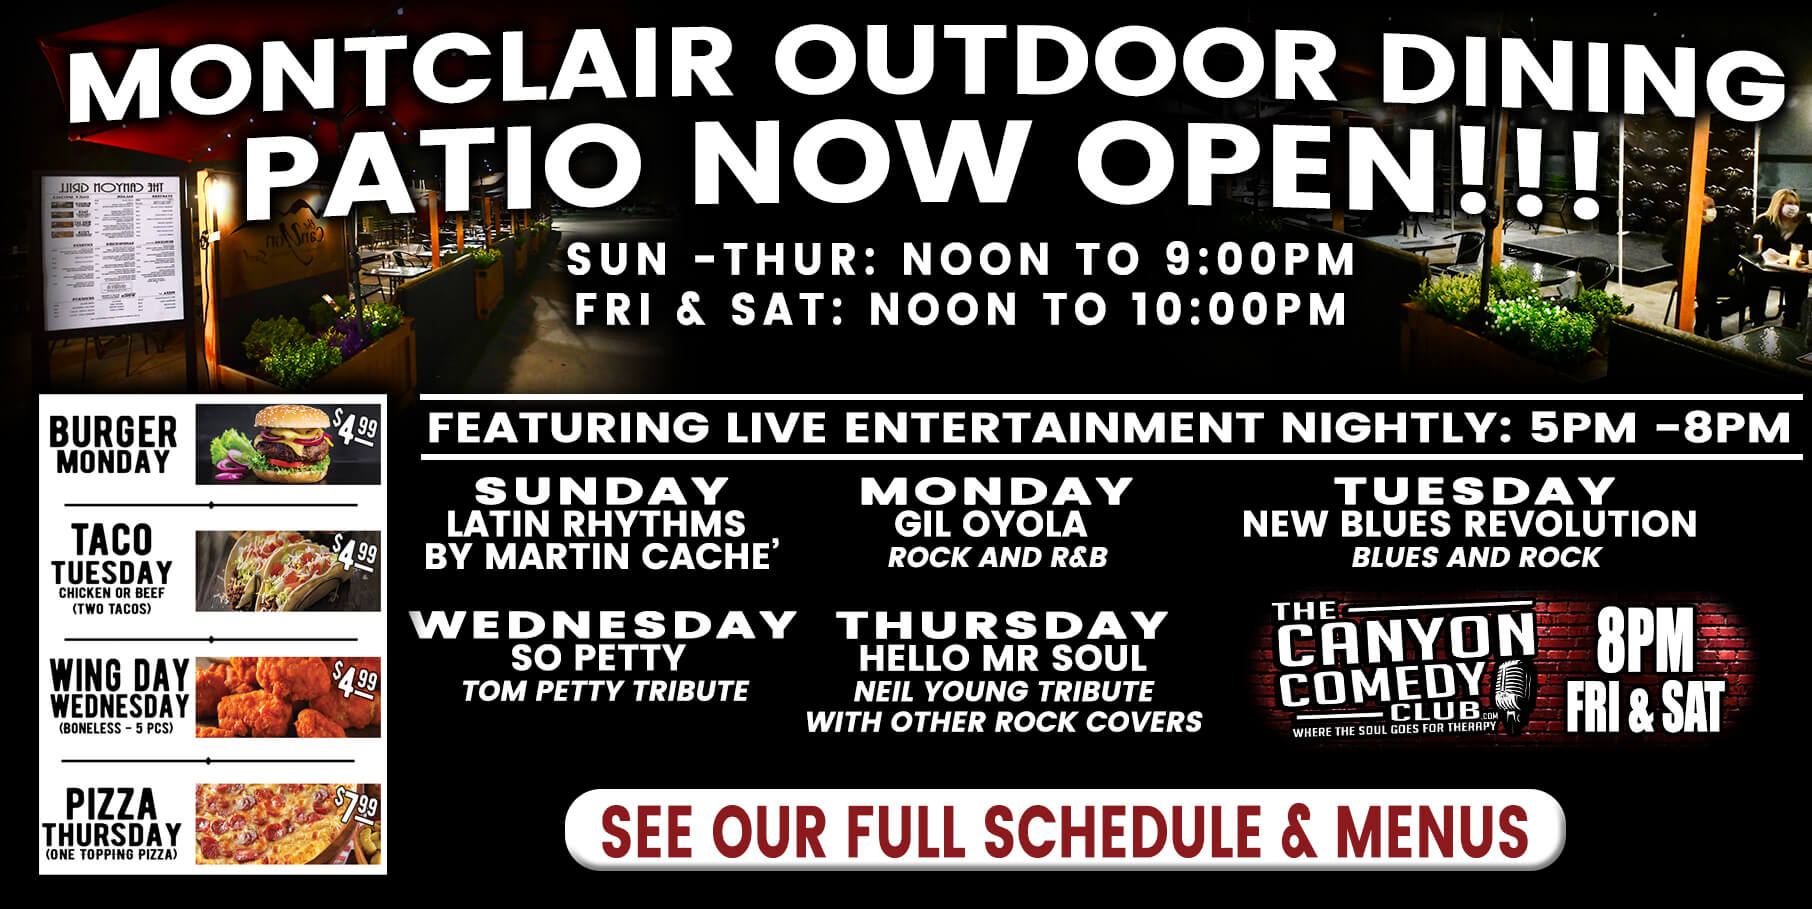 Montclair Patio Schedule  - Learn More!